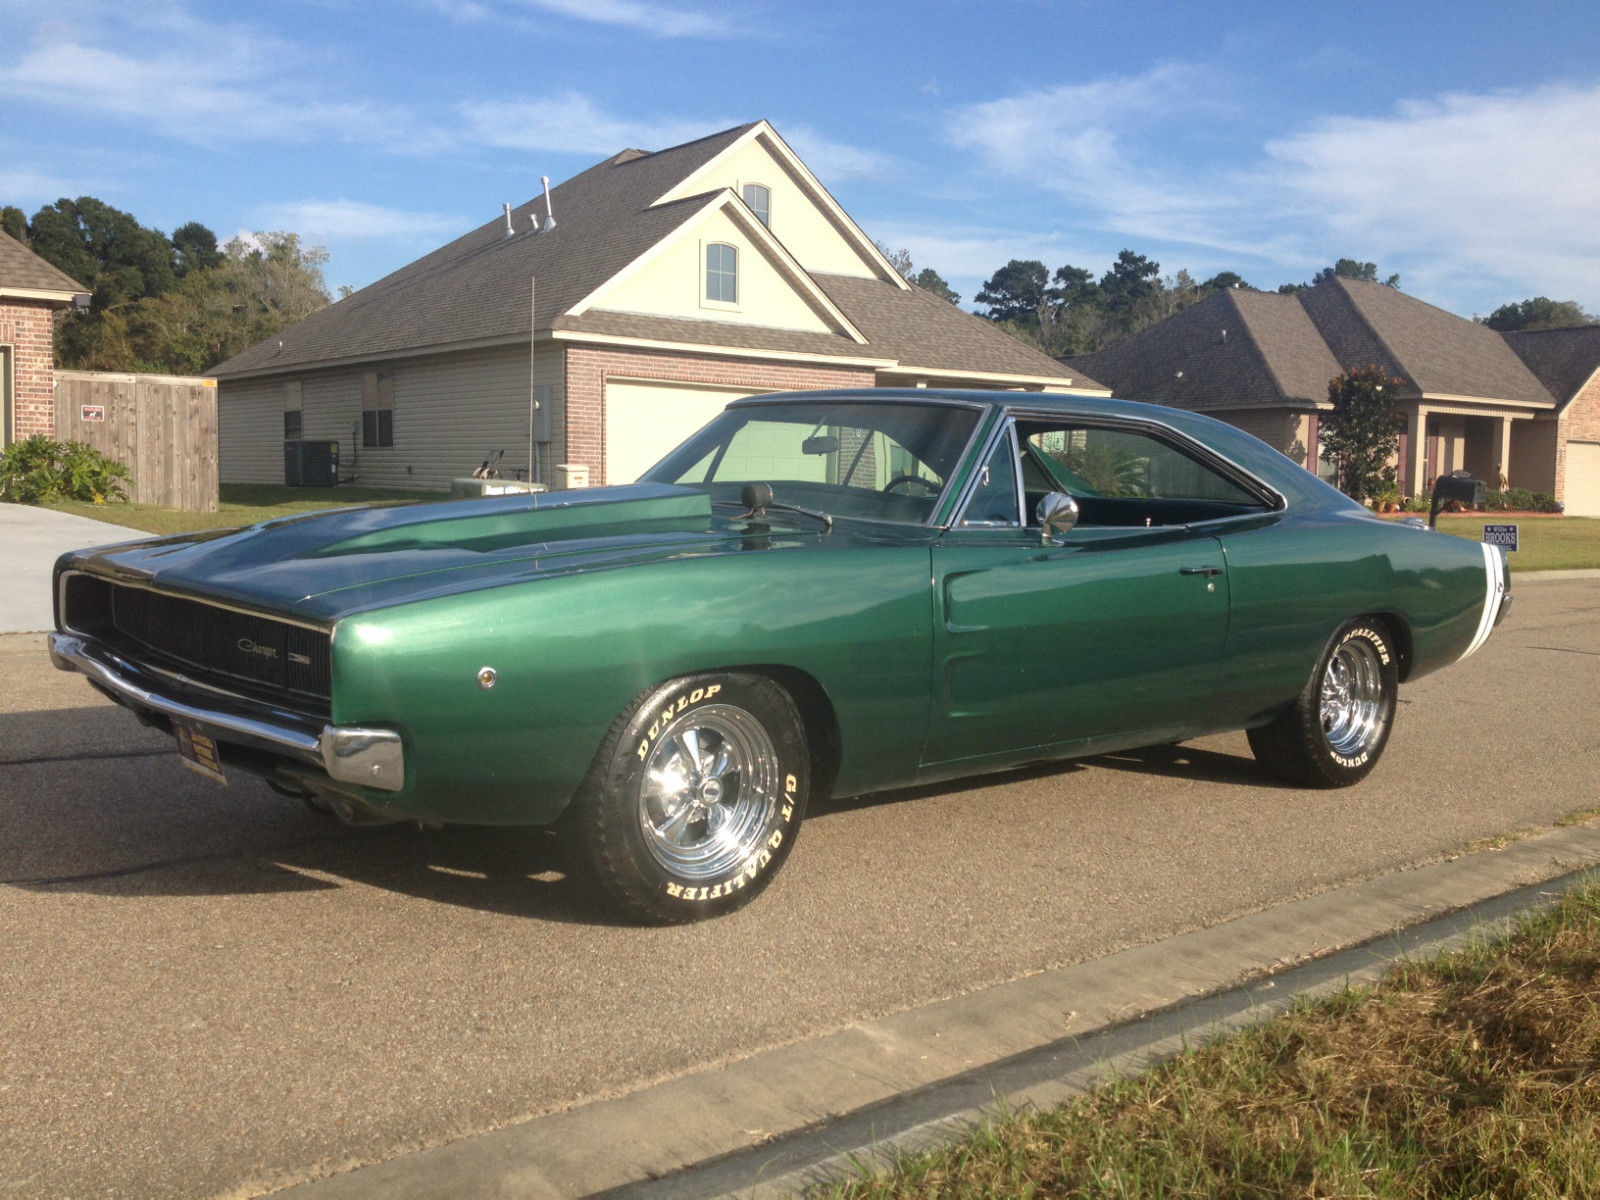 1968 Charger For Sale >> 1968 Dodge Charger 440 Super Fast 540 HP Rust Free AZ ...